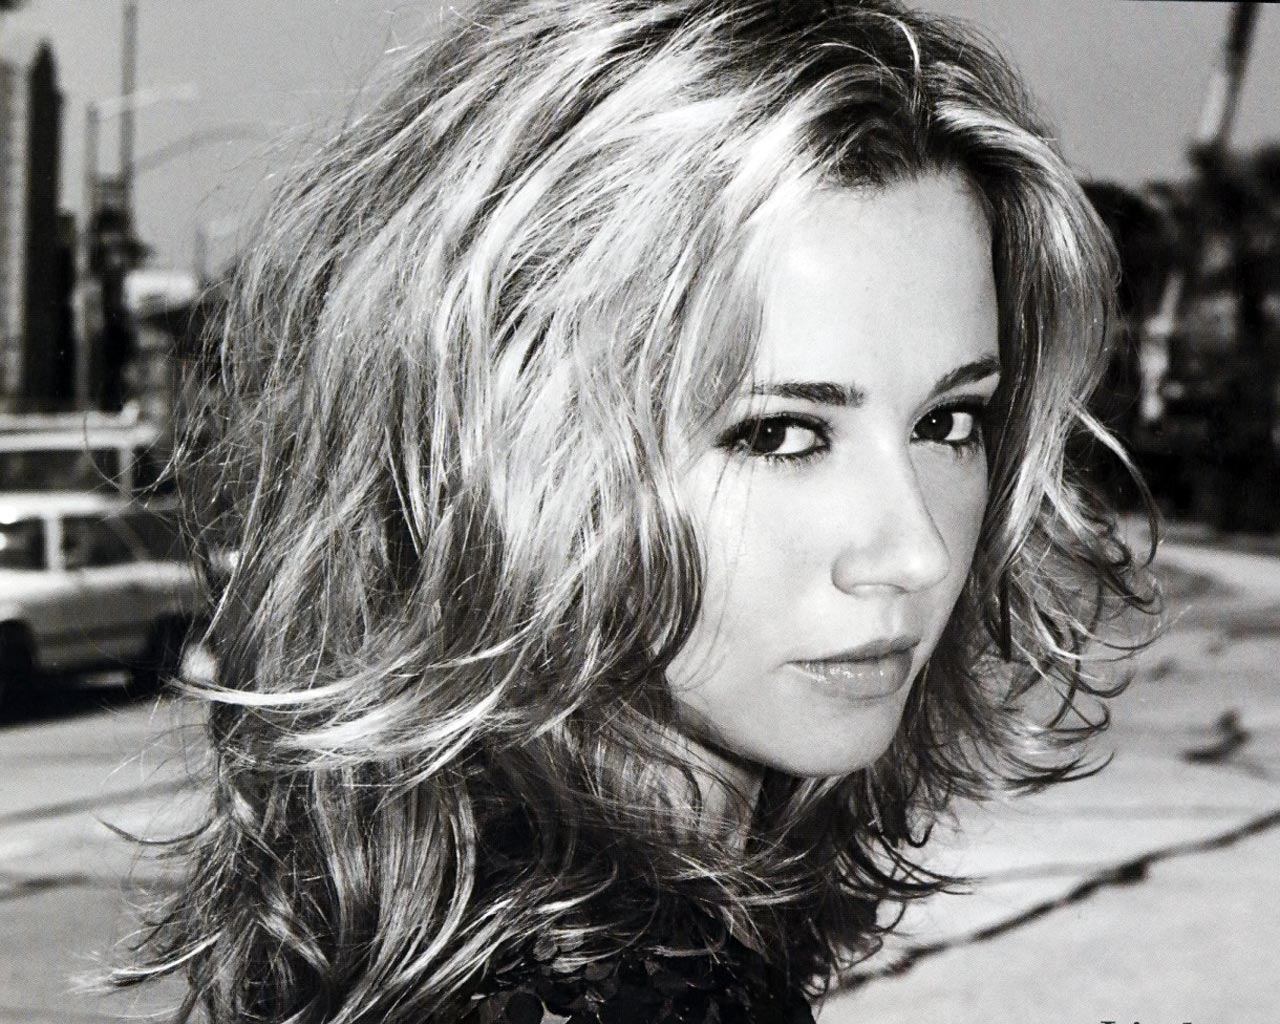 Linda Cardellini for mobile